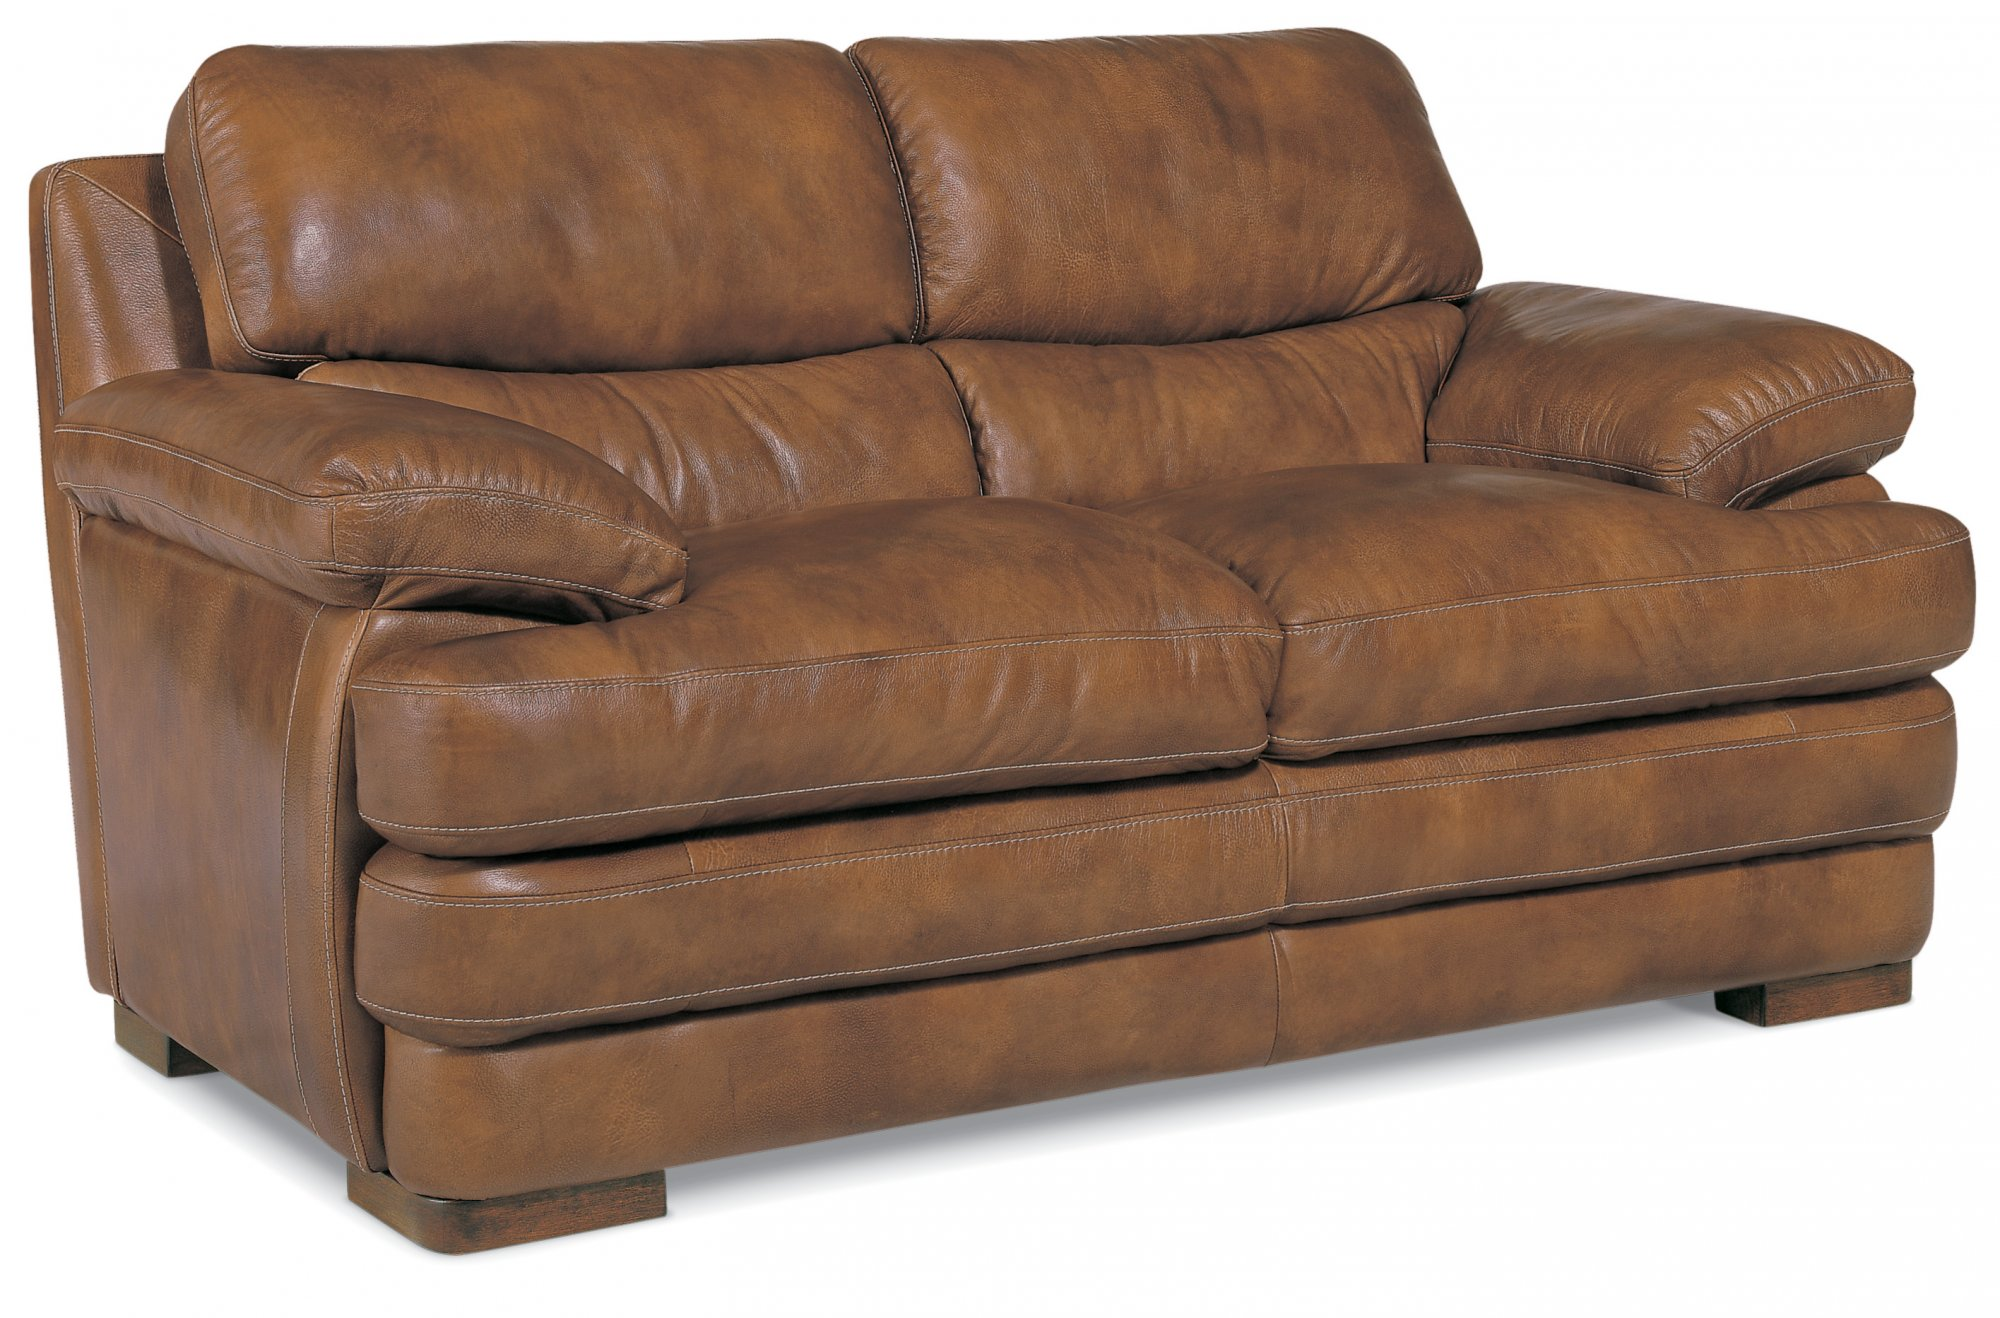 leather loveseat without nailhead trim